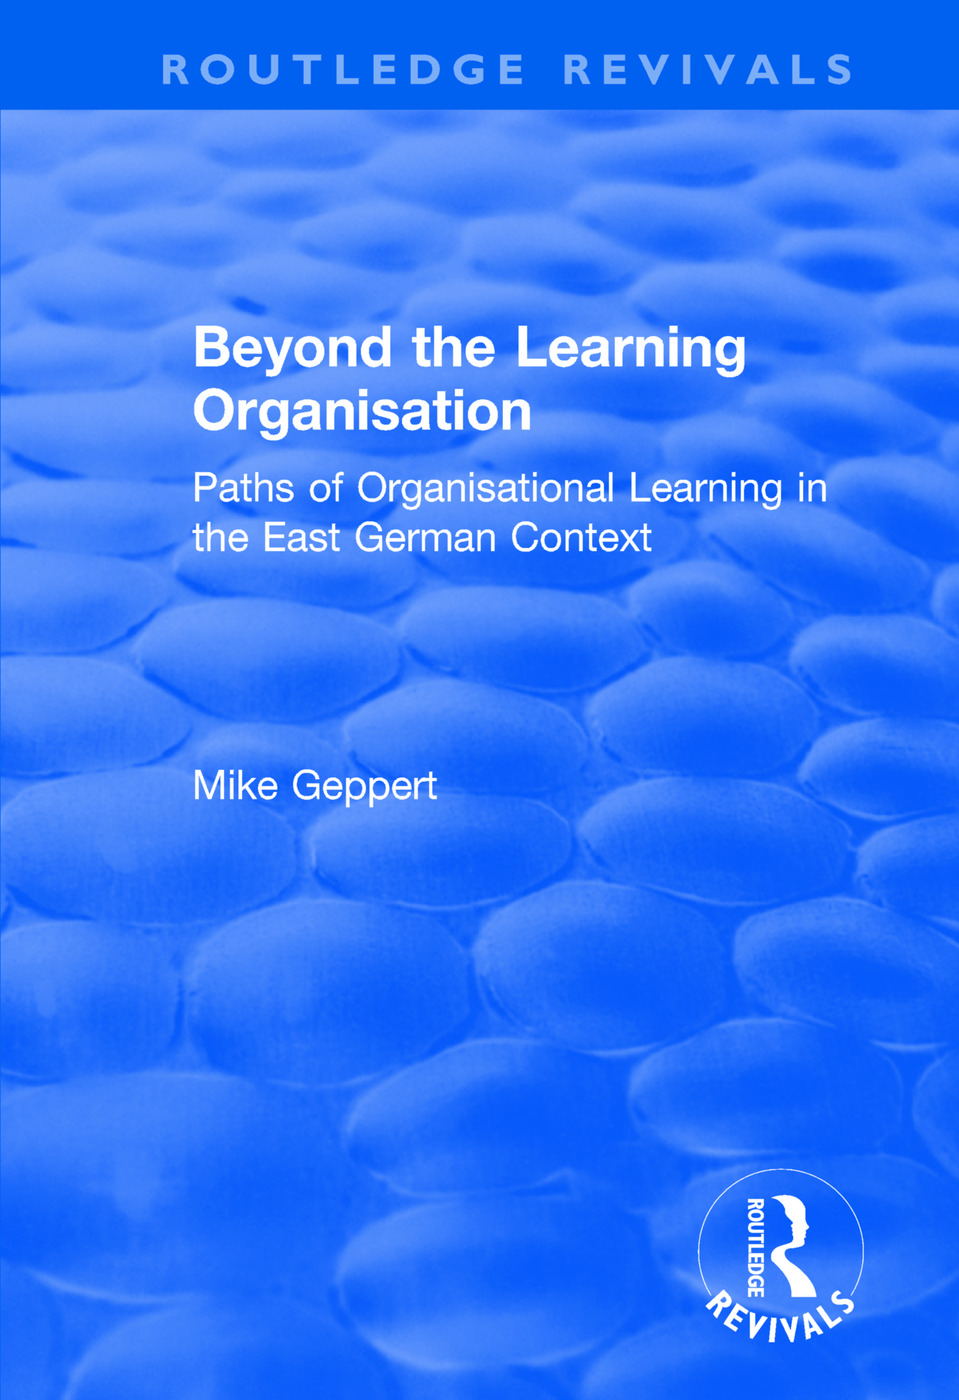 Beyond the Learning Organisation: Paths of Organisational Learning in the East German Context